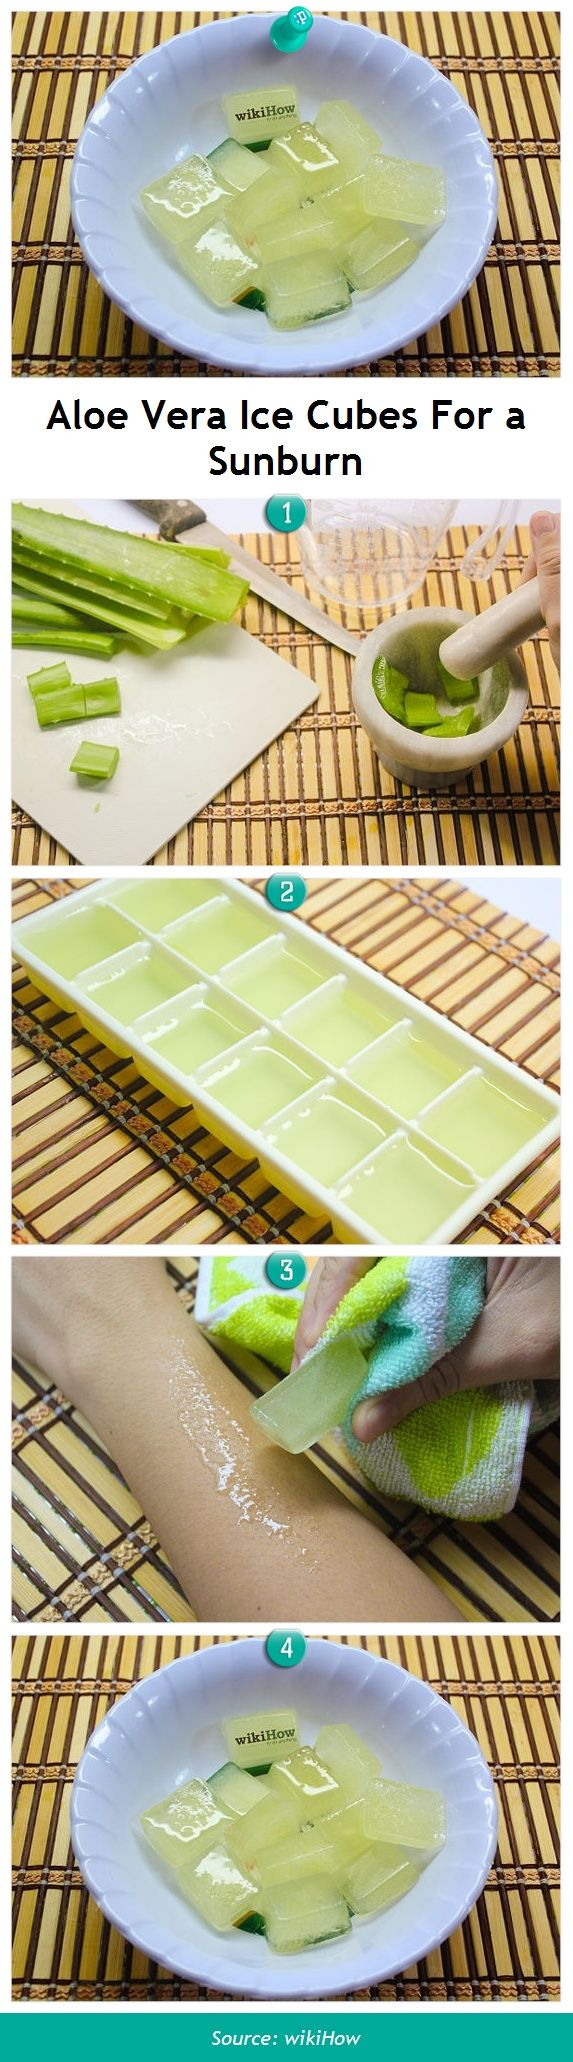 How to Use Aloe Ice Cubes to Treat a Sunburn